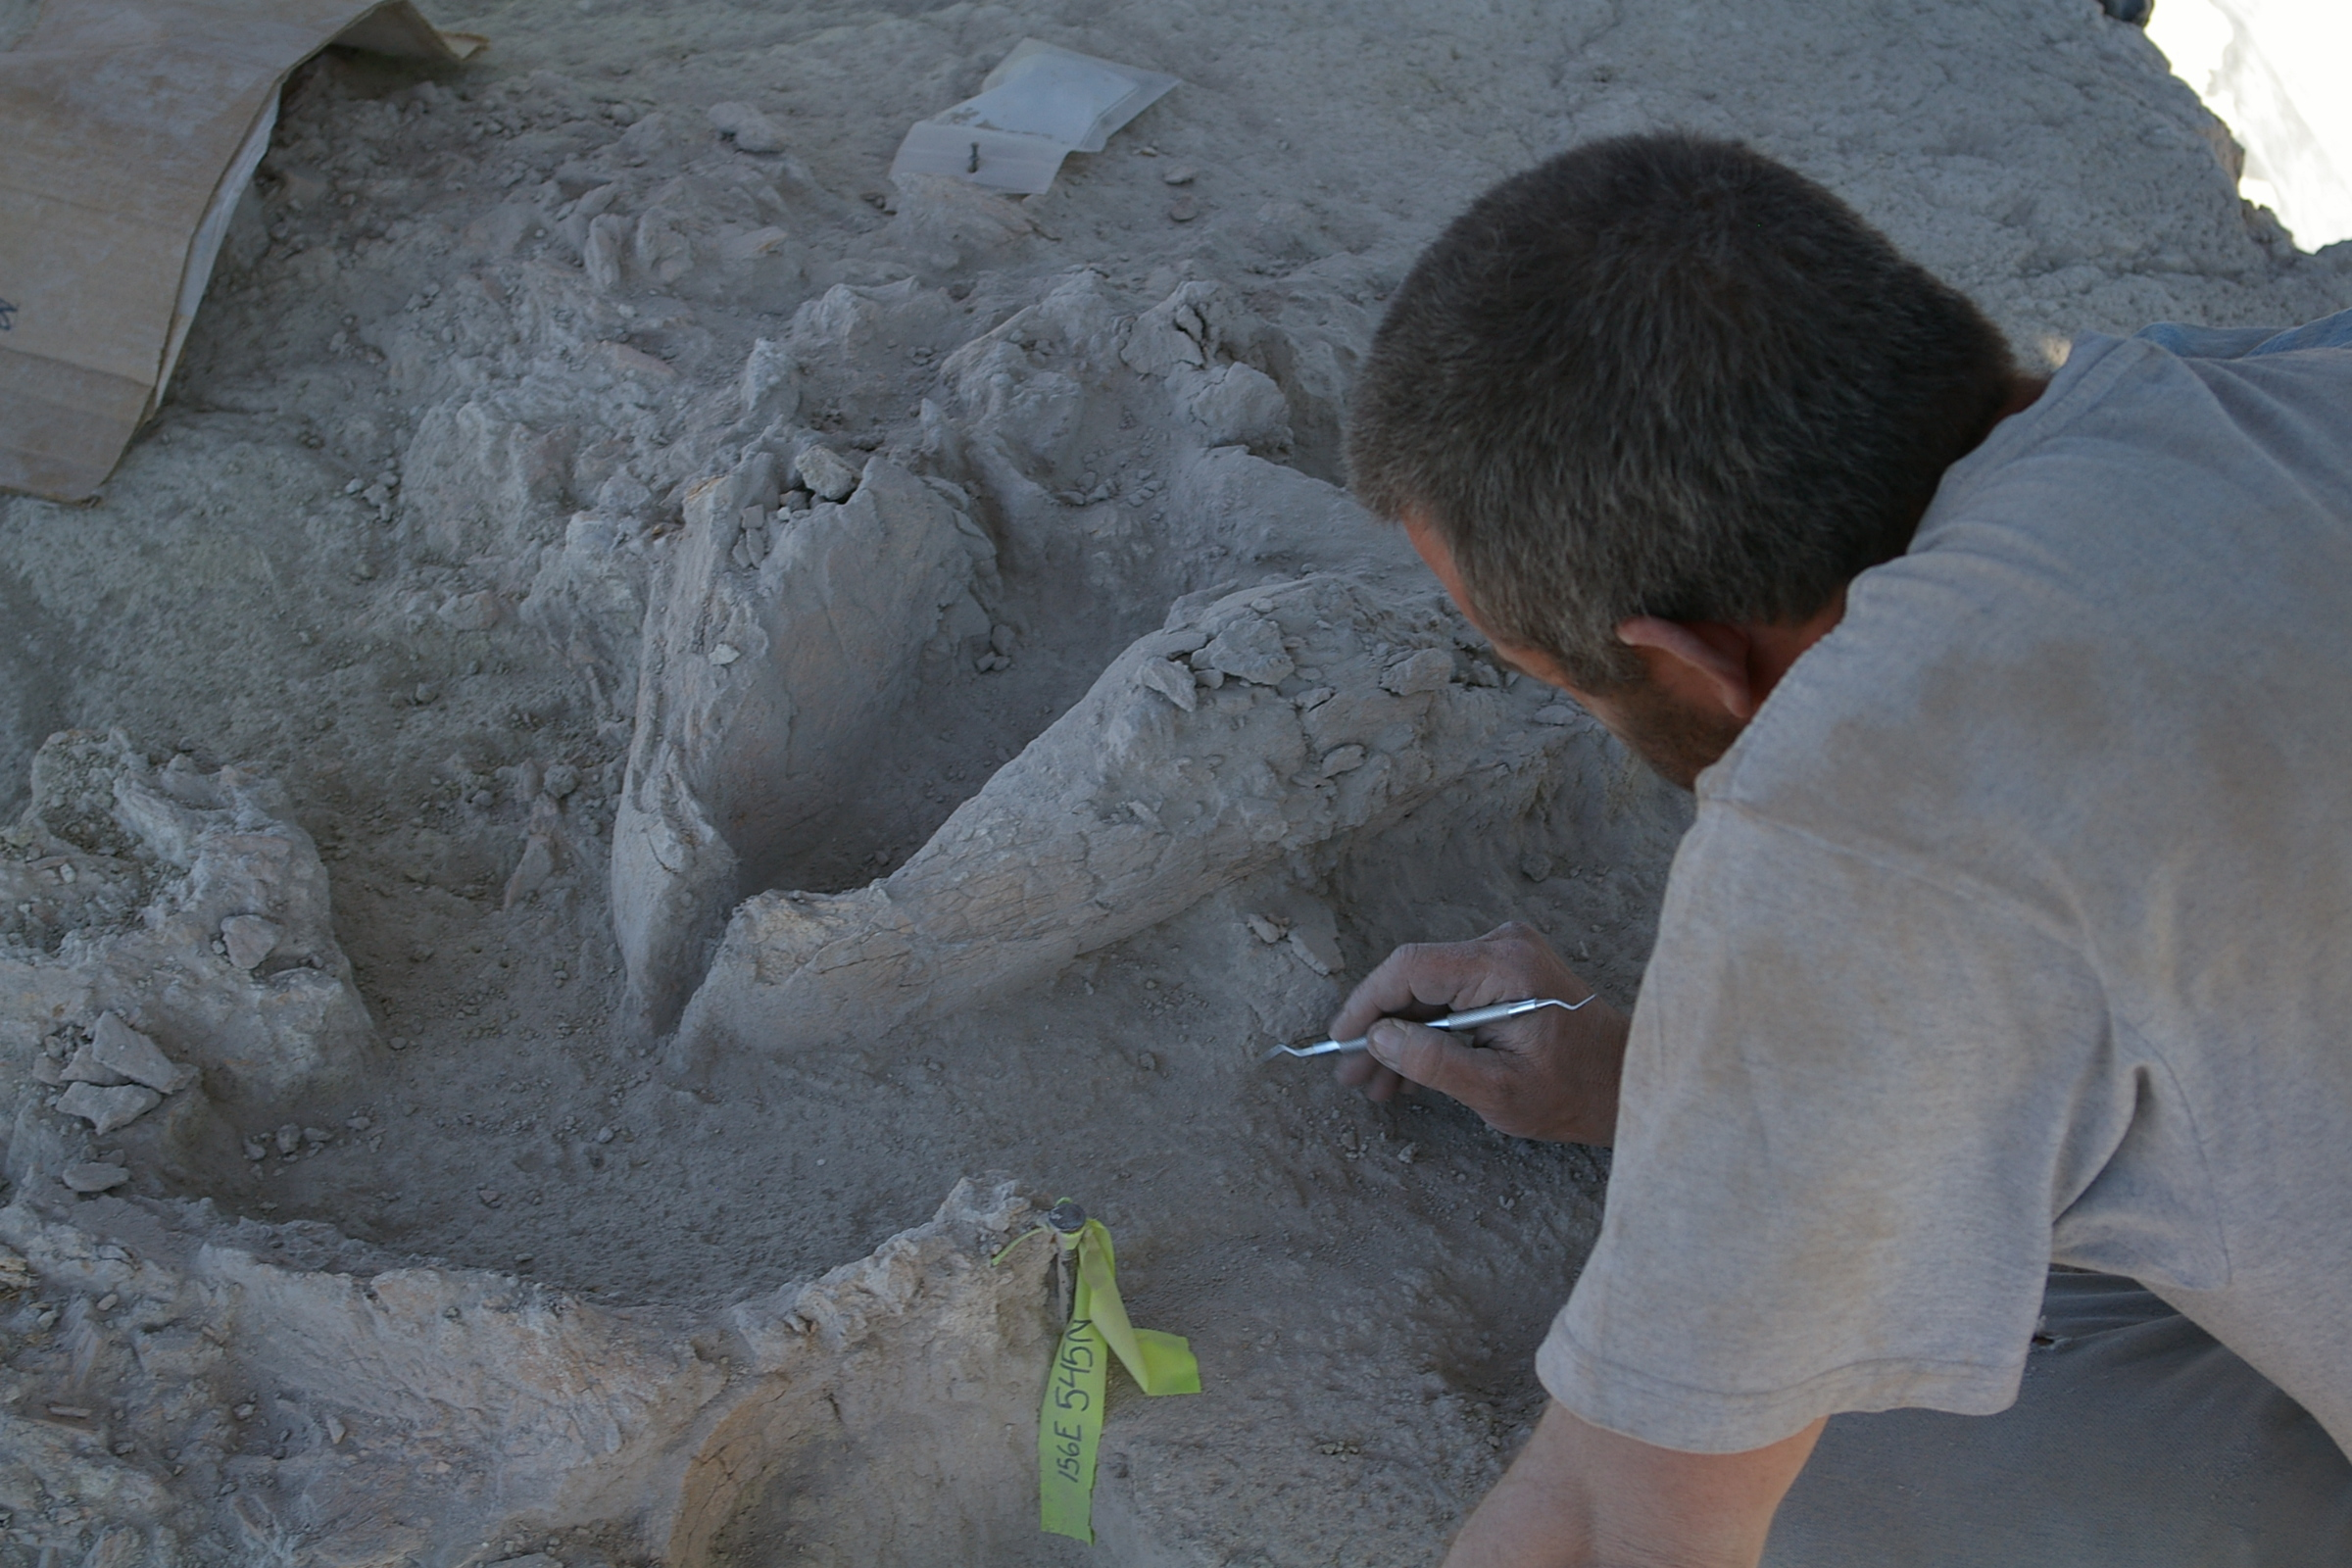 Figure 5. The mandible of Gomphothere #2 during excavation. The dentition, key to the identification of the species, was not exposed until some months after excavation in the lab.